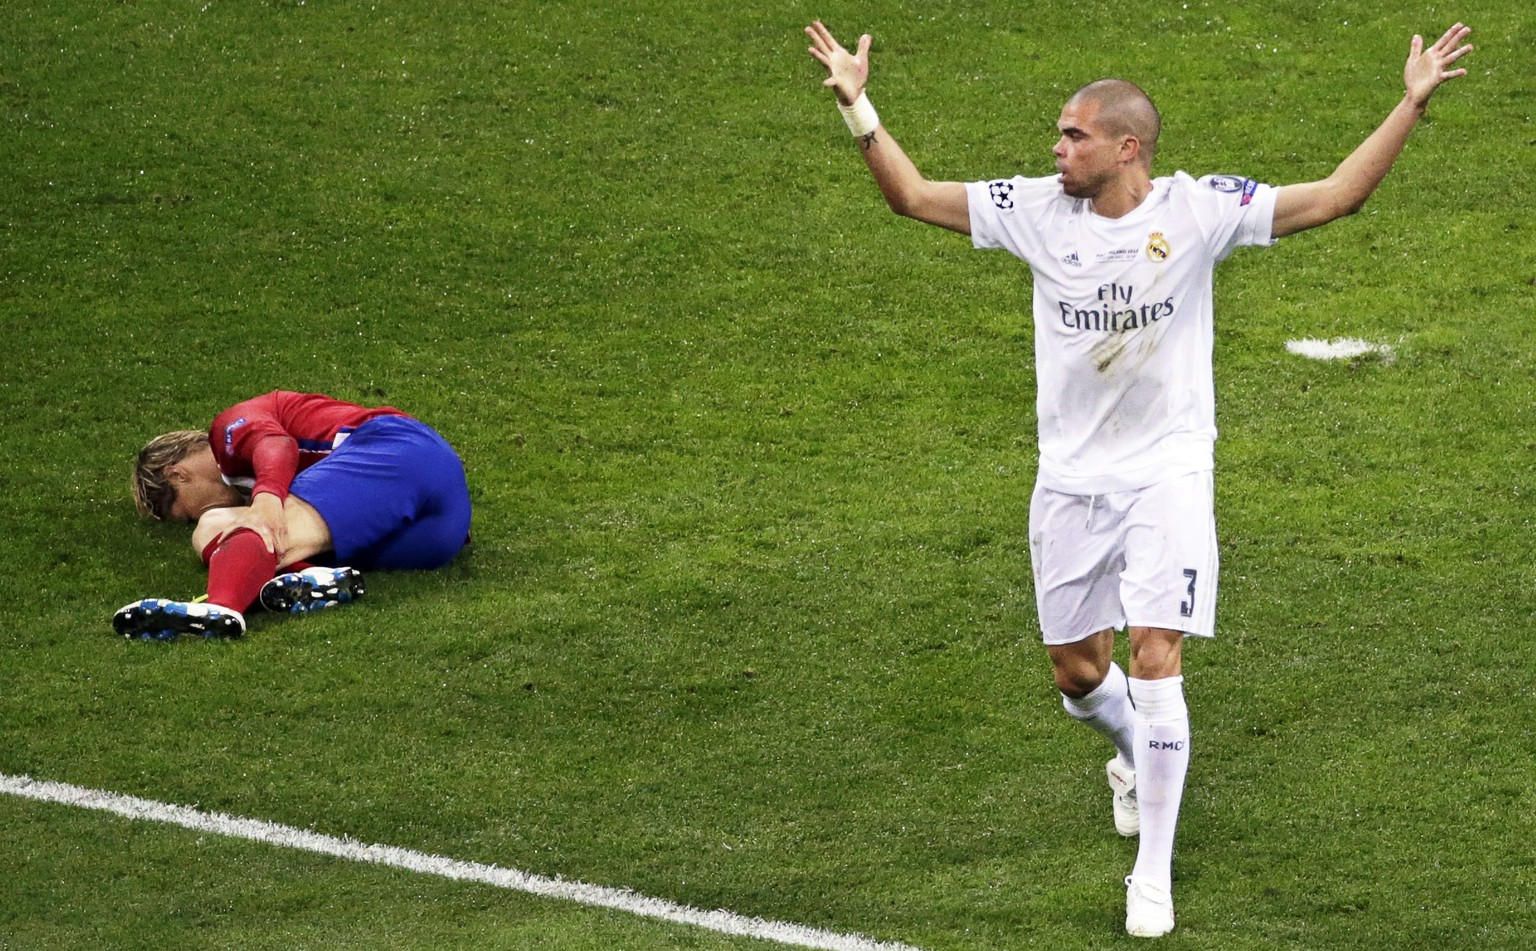 epa05334661 Real Madrid's Pepe (R) reacts after tackling Atletico Madrid's Fernando Torres (L) during the UEFA Champions League final between Real Madrid and Atletico Madrid at the Giuseppe Meazza Stadium in Milan, Italy, 28 May 2016.  EPA/ARMANDO BABANI